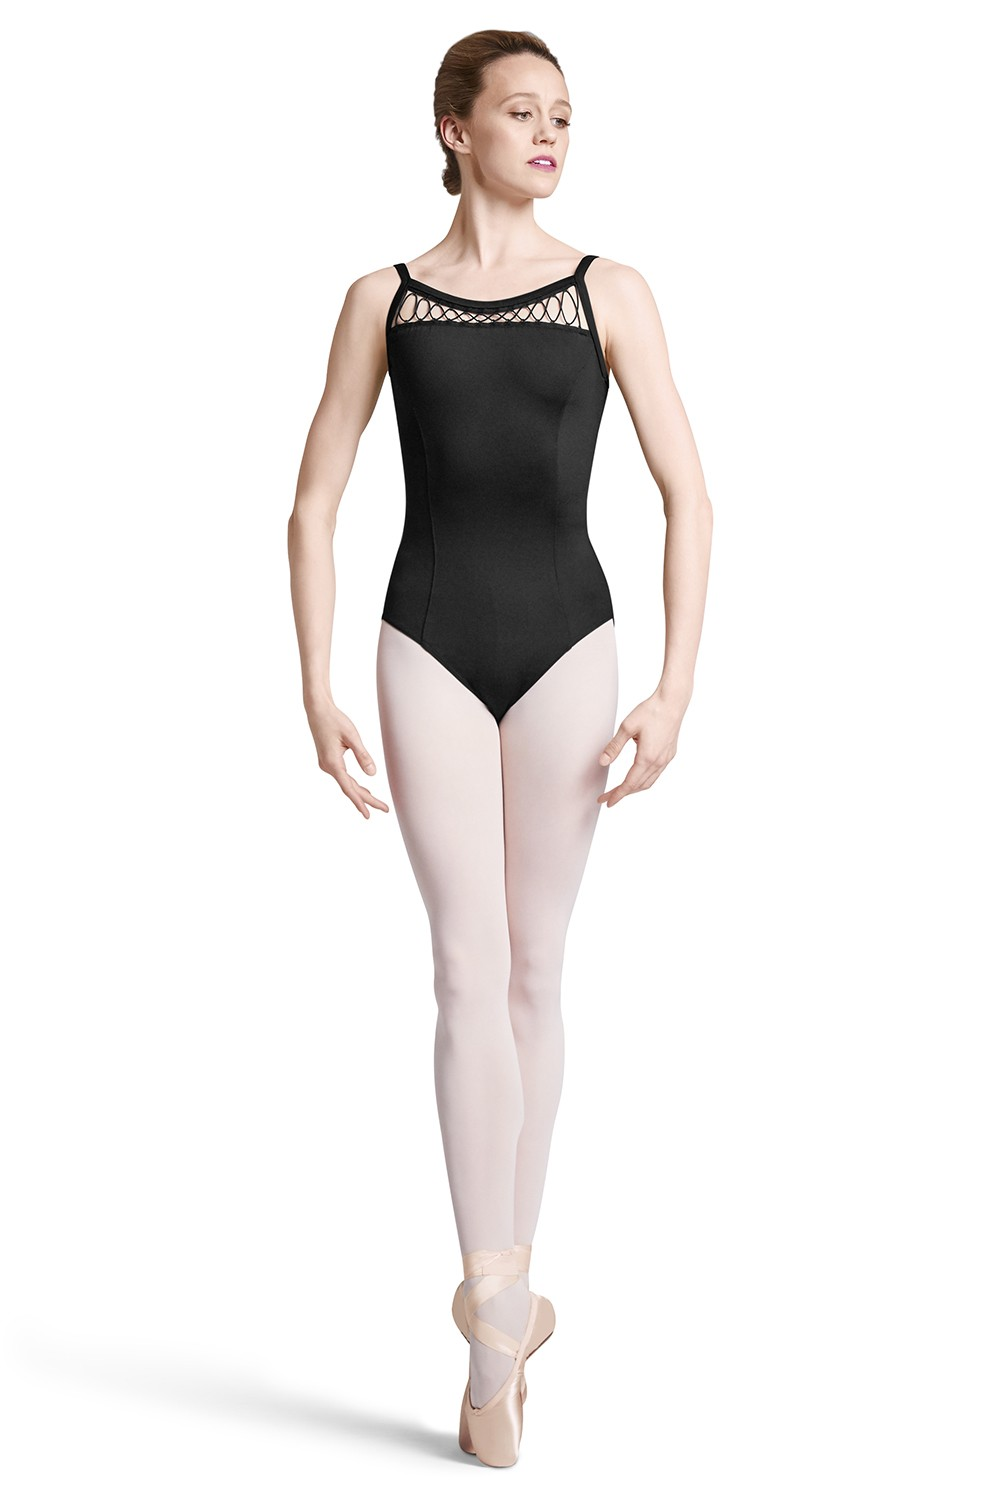 Acantha Women's Dance Leotards